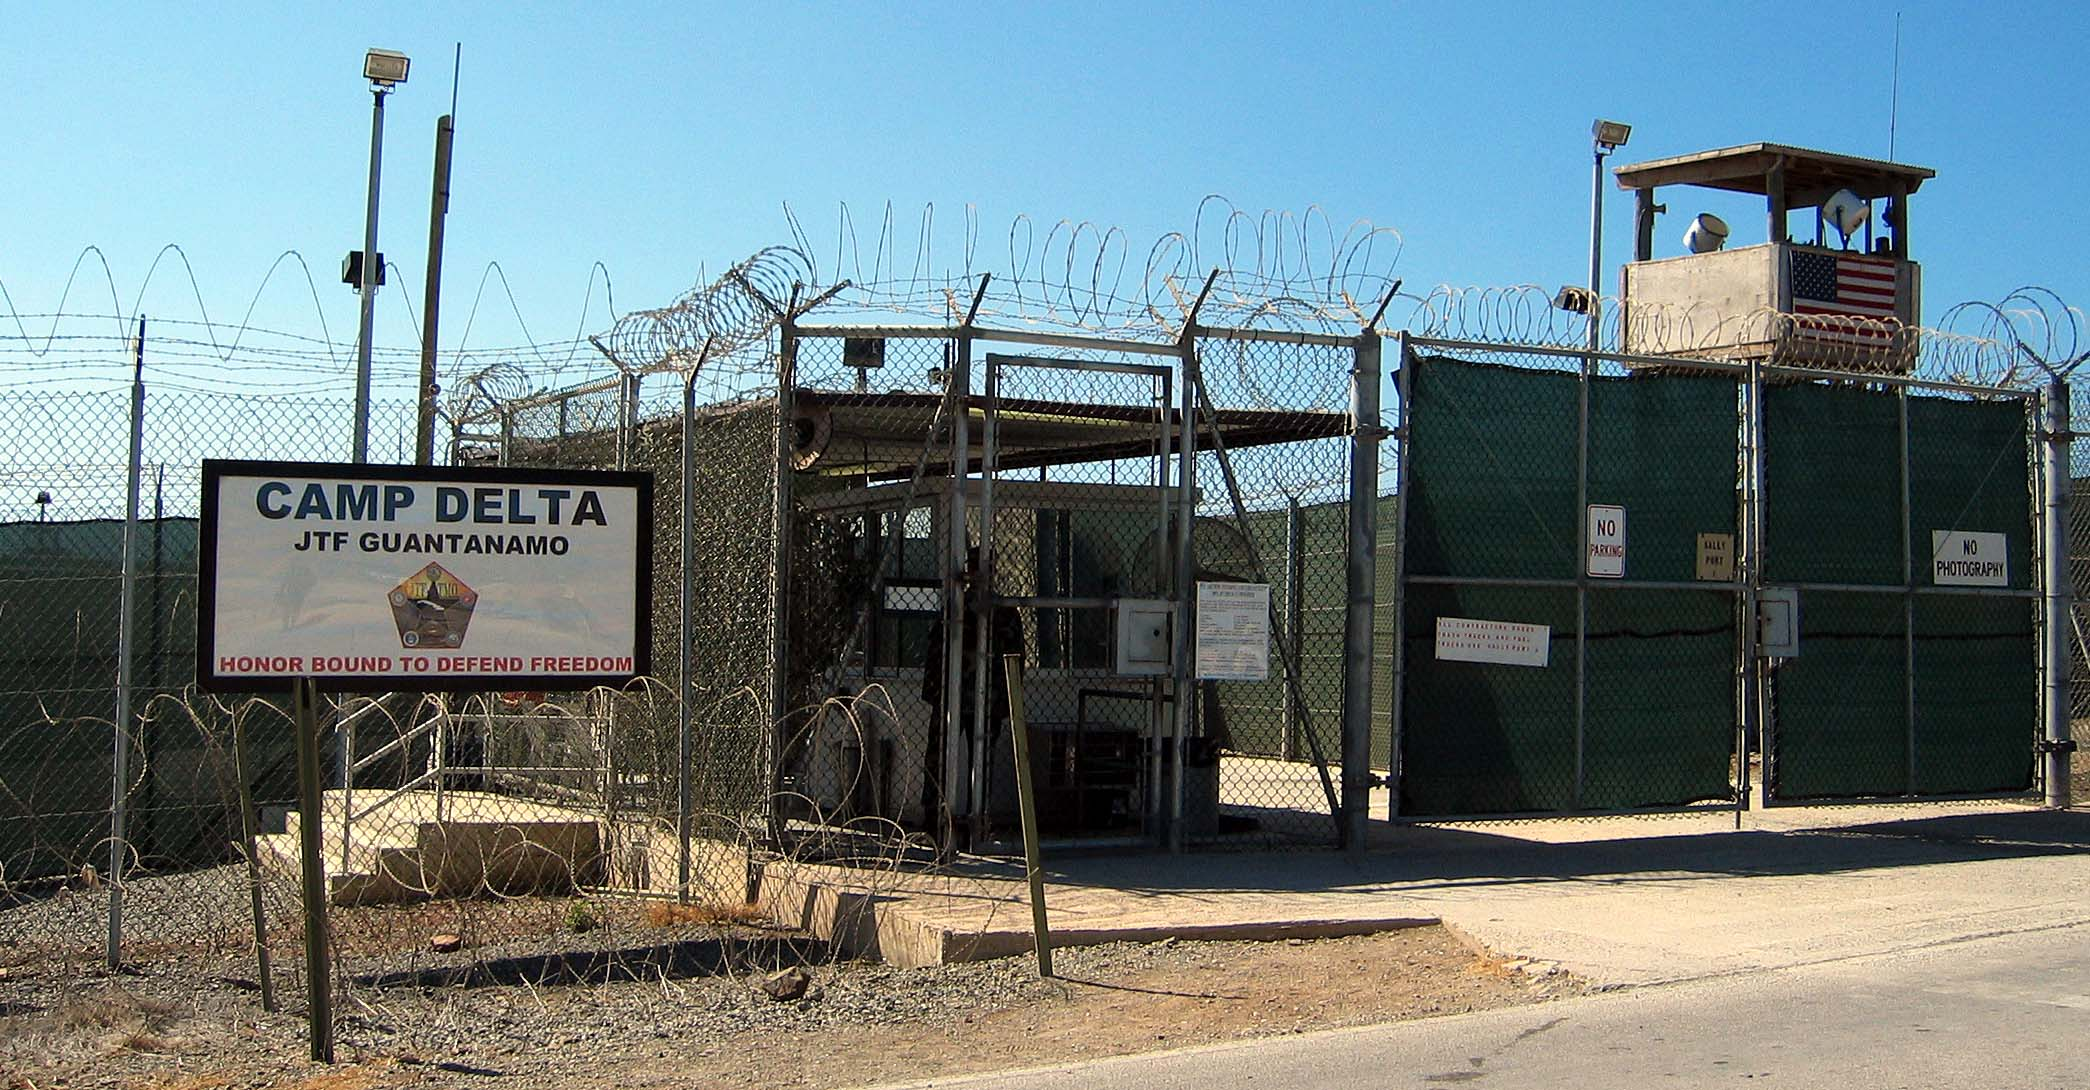 gm Britains Last Detainee At Guantanamo Bay Is Set To Be Released